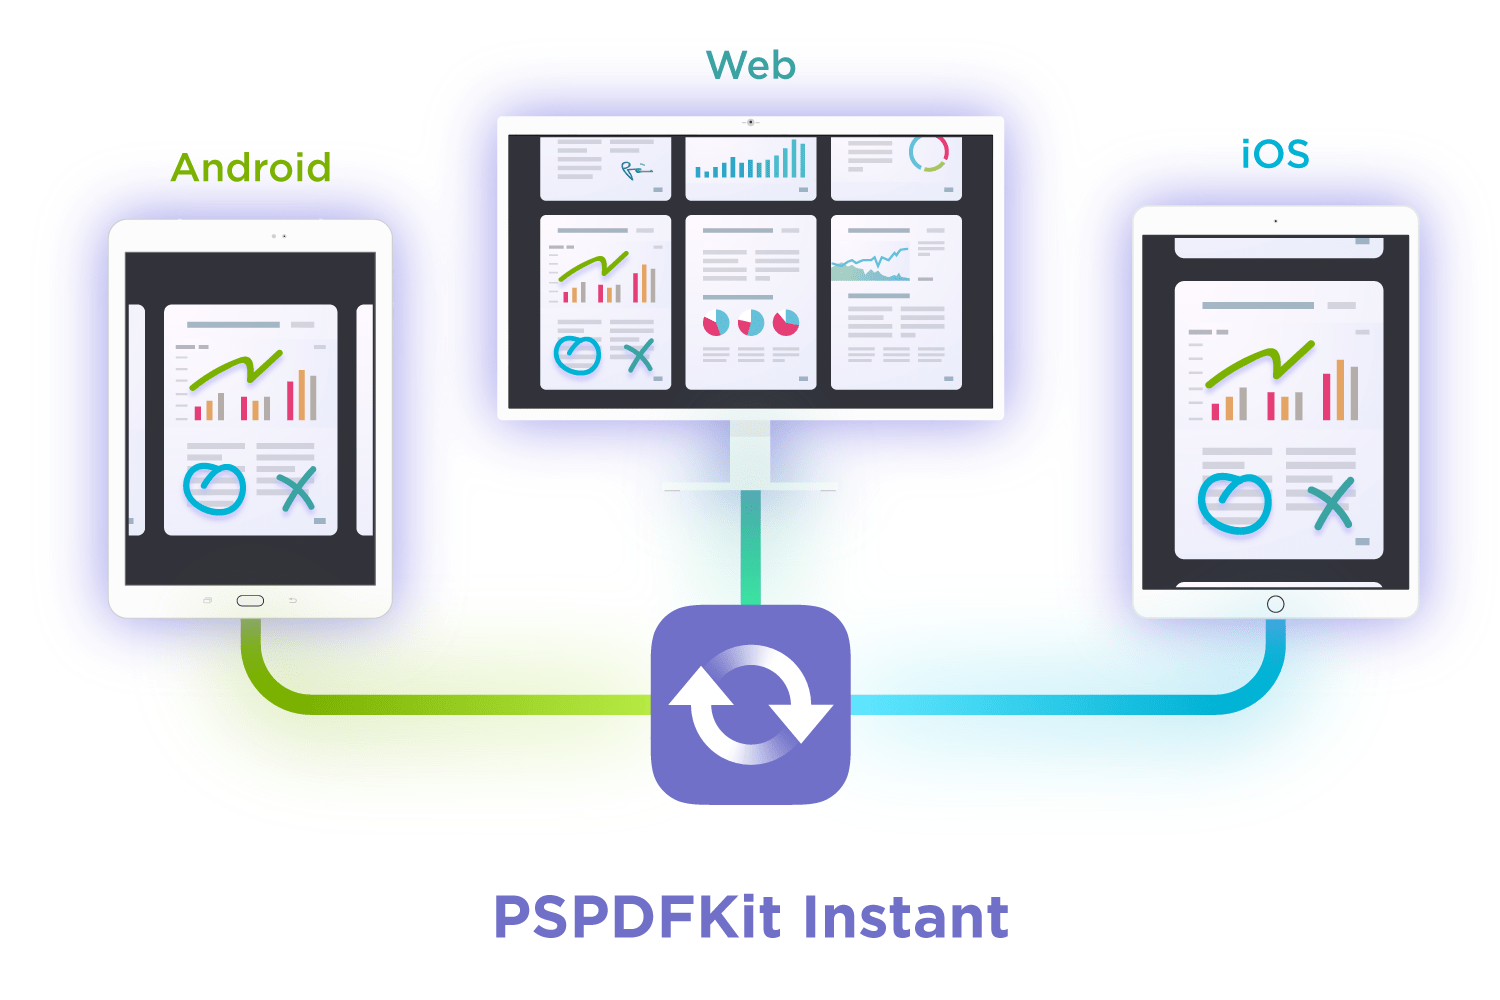 Illustration: Synchronizing Documents with PSPDFKit Instant